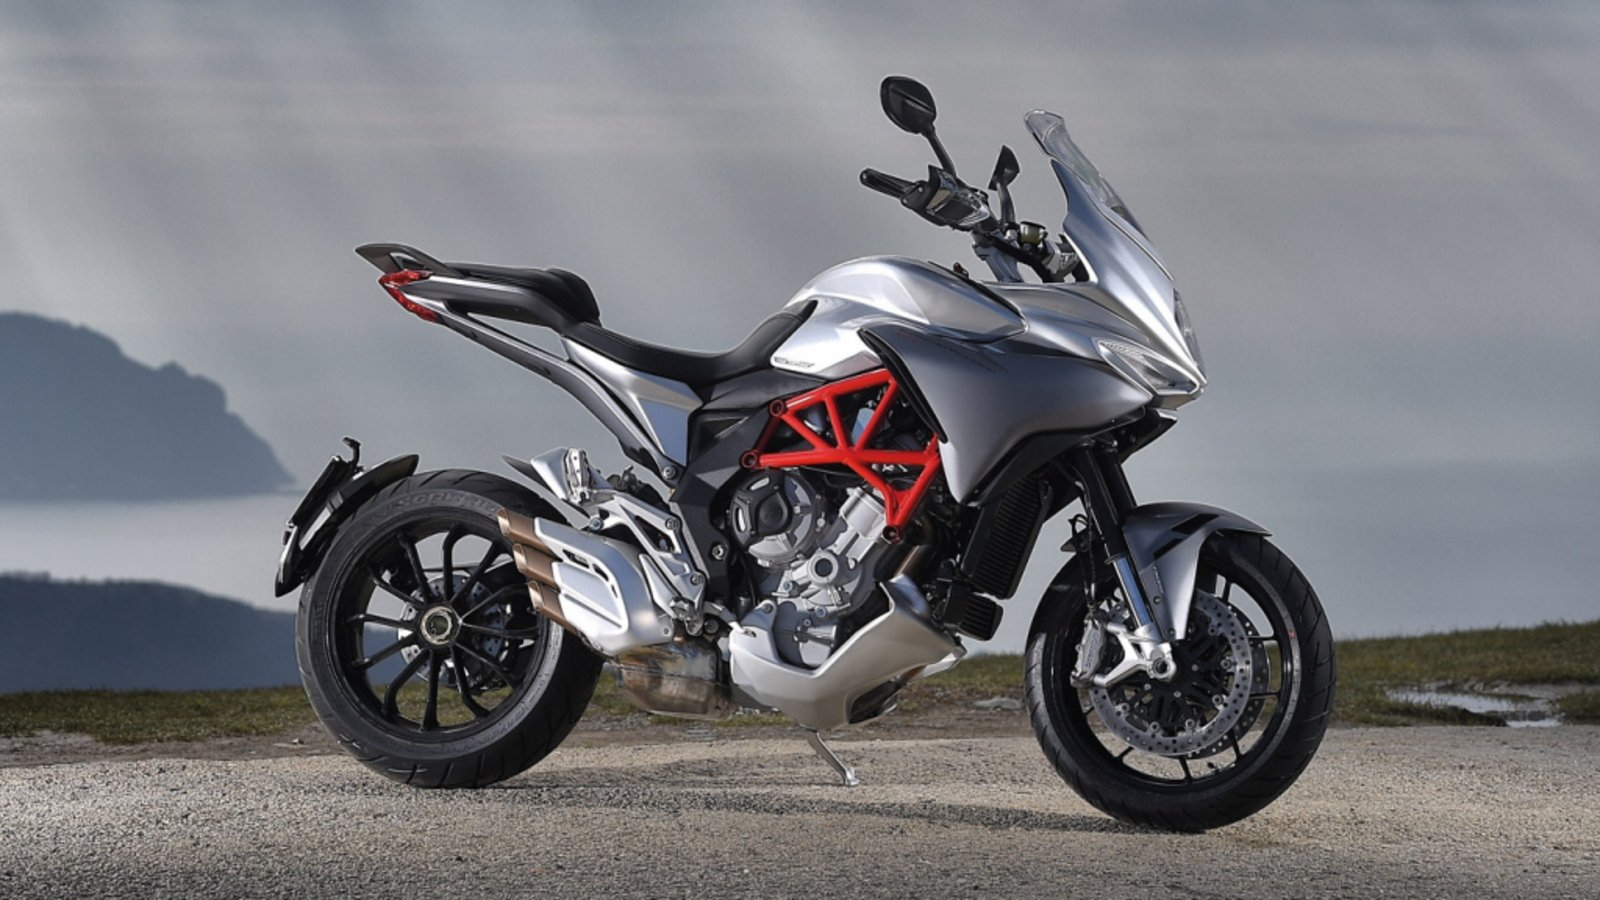 2014 2017 mv agusta turismo veloce 800 review top speed. Black Bedroom Furniture Sets. Home Design Ideas